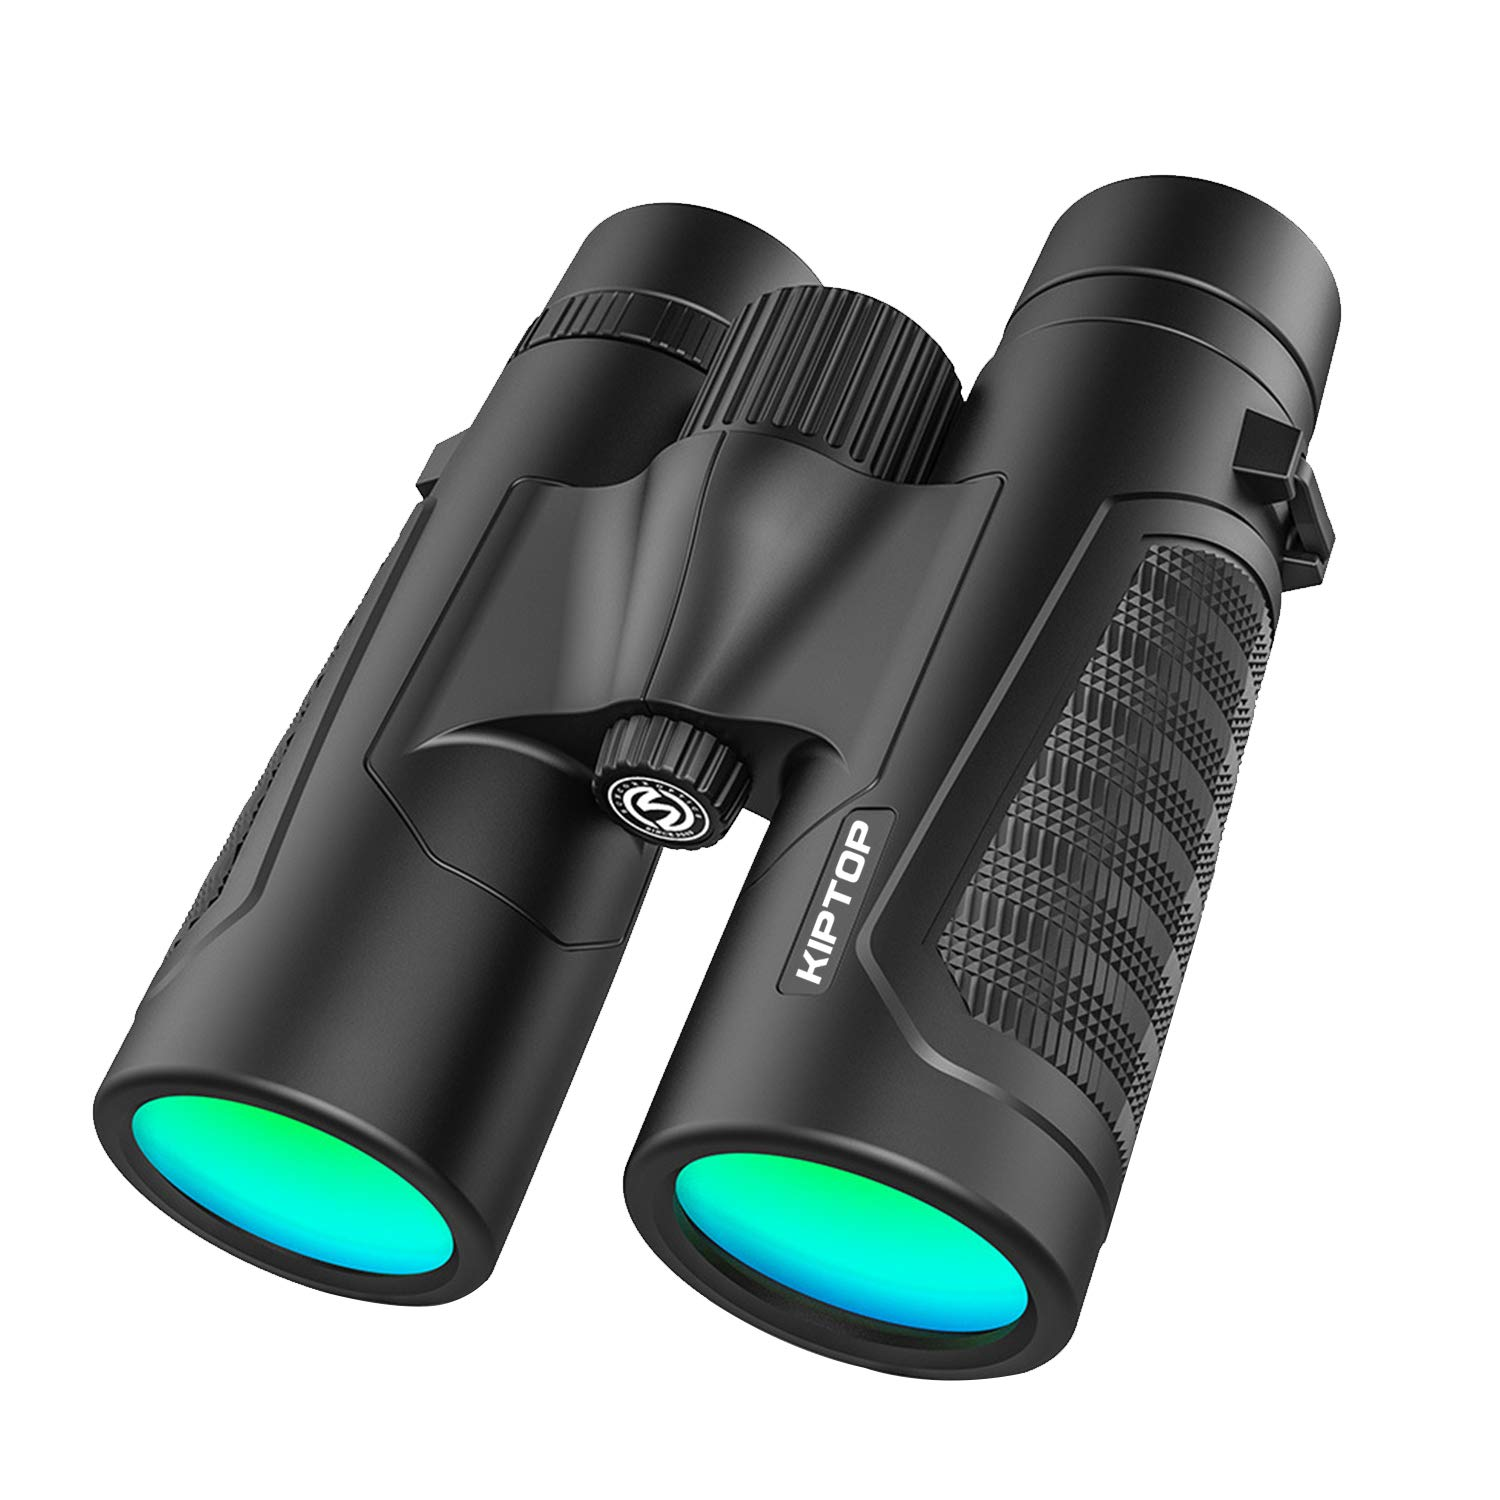 KIPTOP 12 x 42 Professional Binoculars, BAK4 Lens Material HD Color Binoculars, Extra Wide Field of View with True High Clarity for Bird Watching, Hiking, Traveling, Hunting and Sports